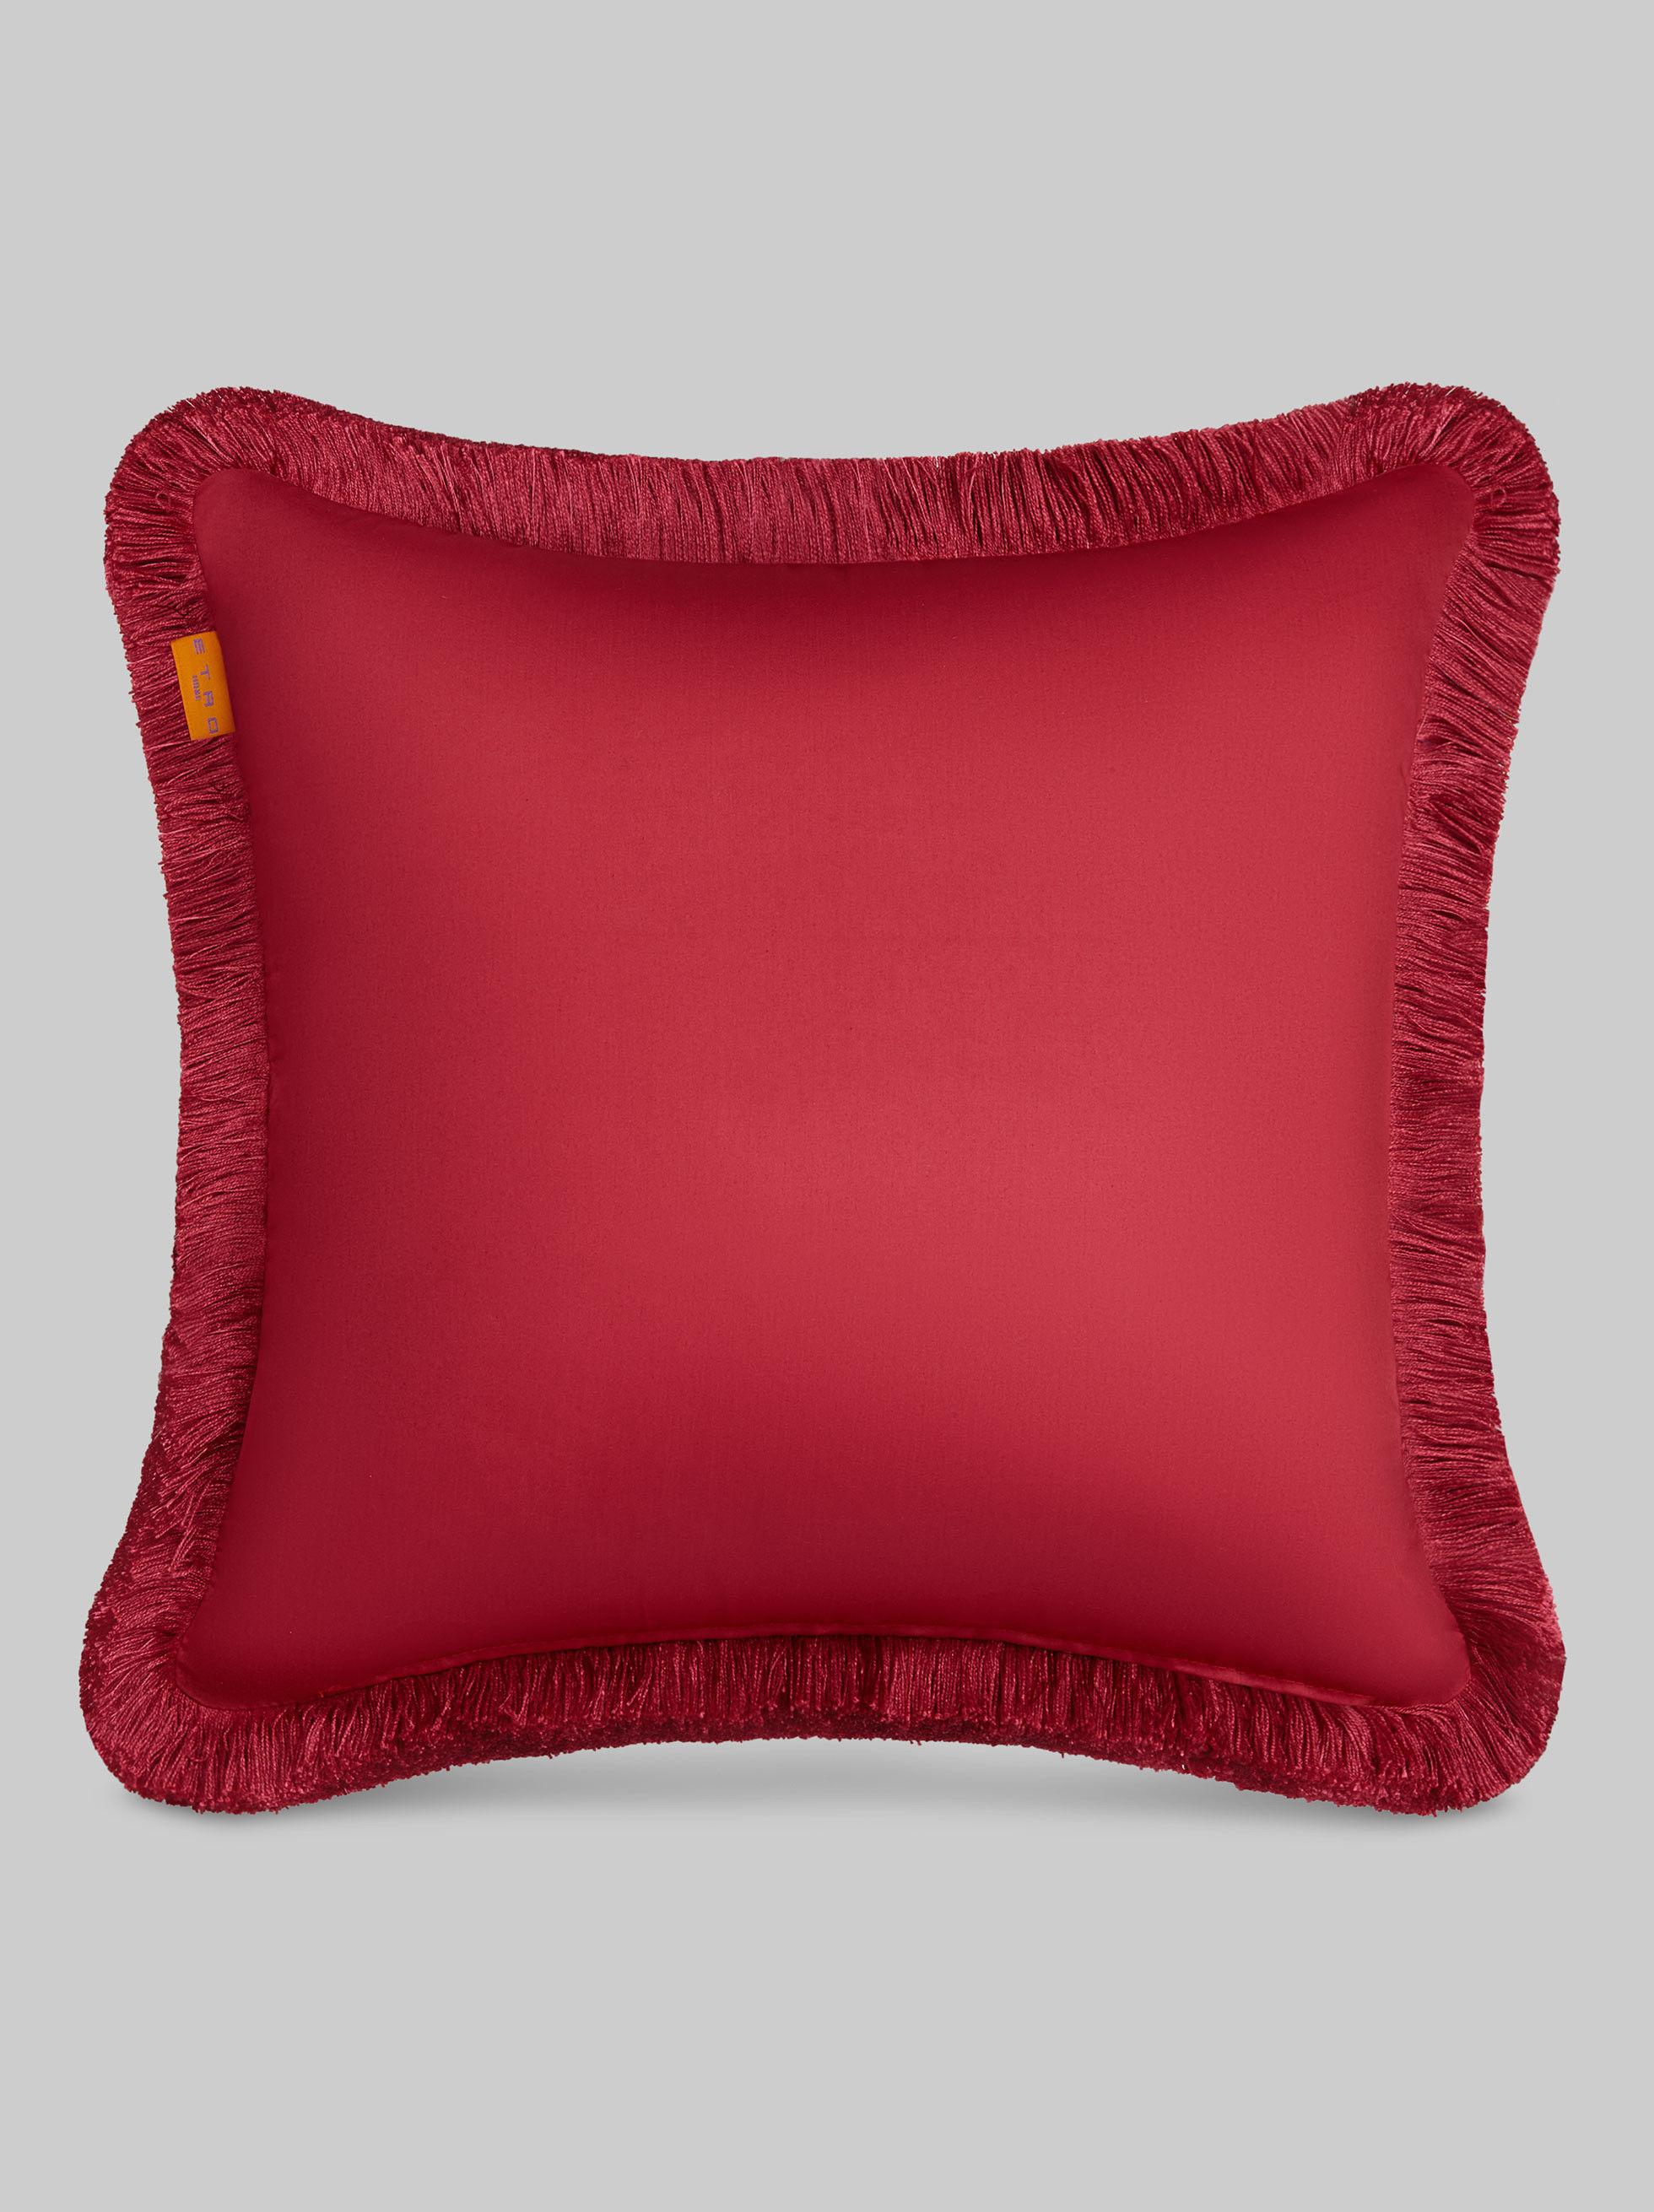 SATIN CUSHION WITH FRINGE